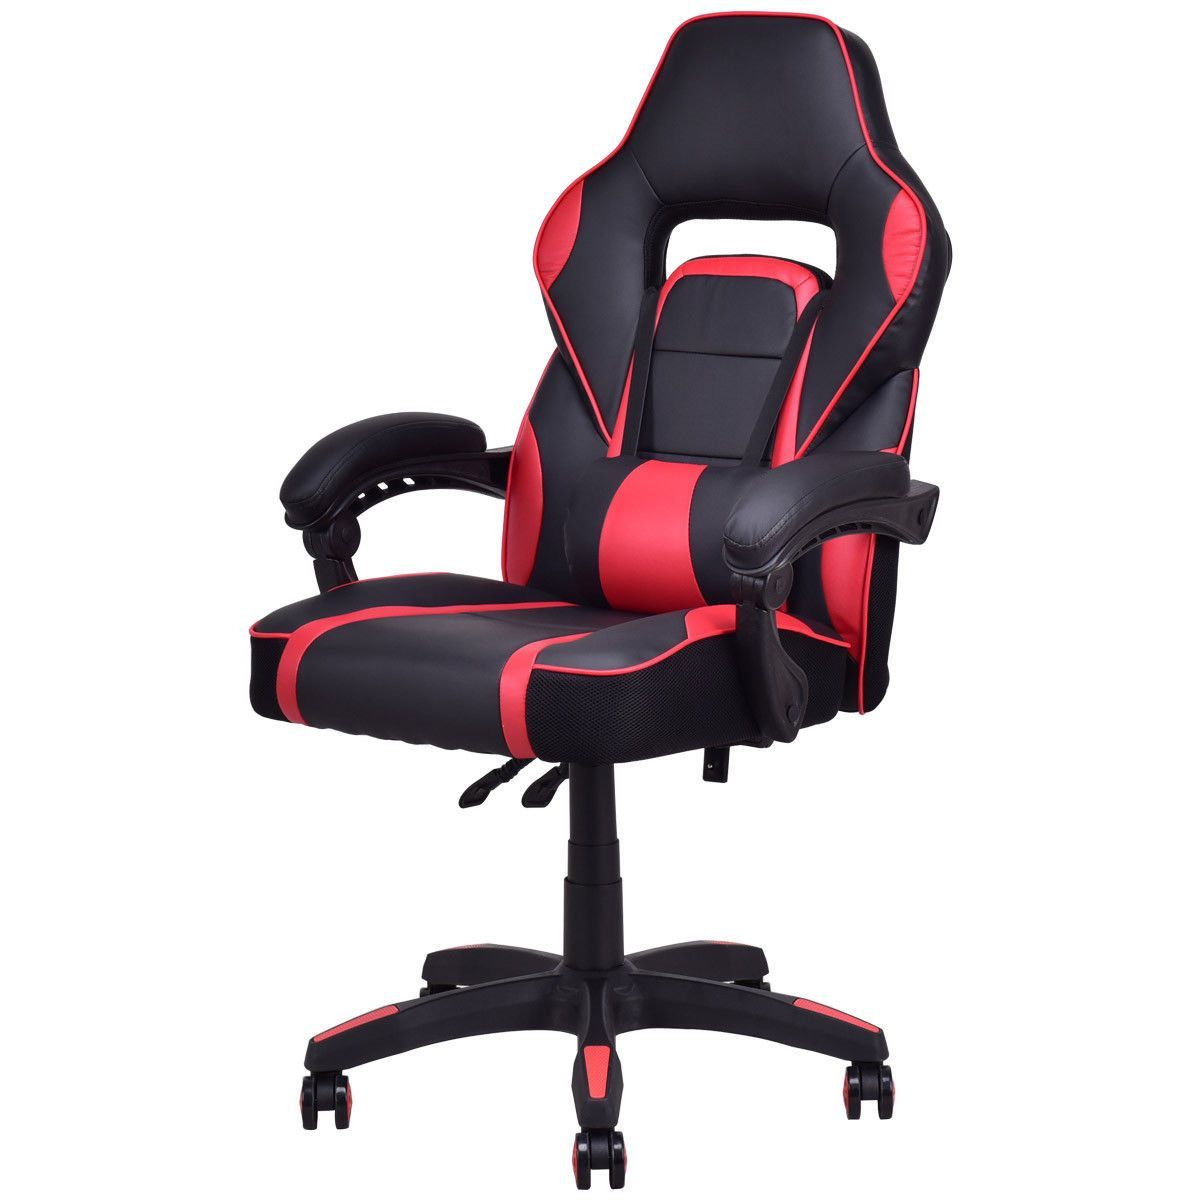 Executive High Back Racing Style Pu Leather Gaming Chair Red In 2020 Gaming Chair Game Development Company Pu Leather